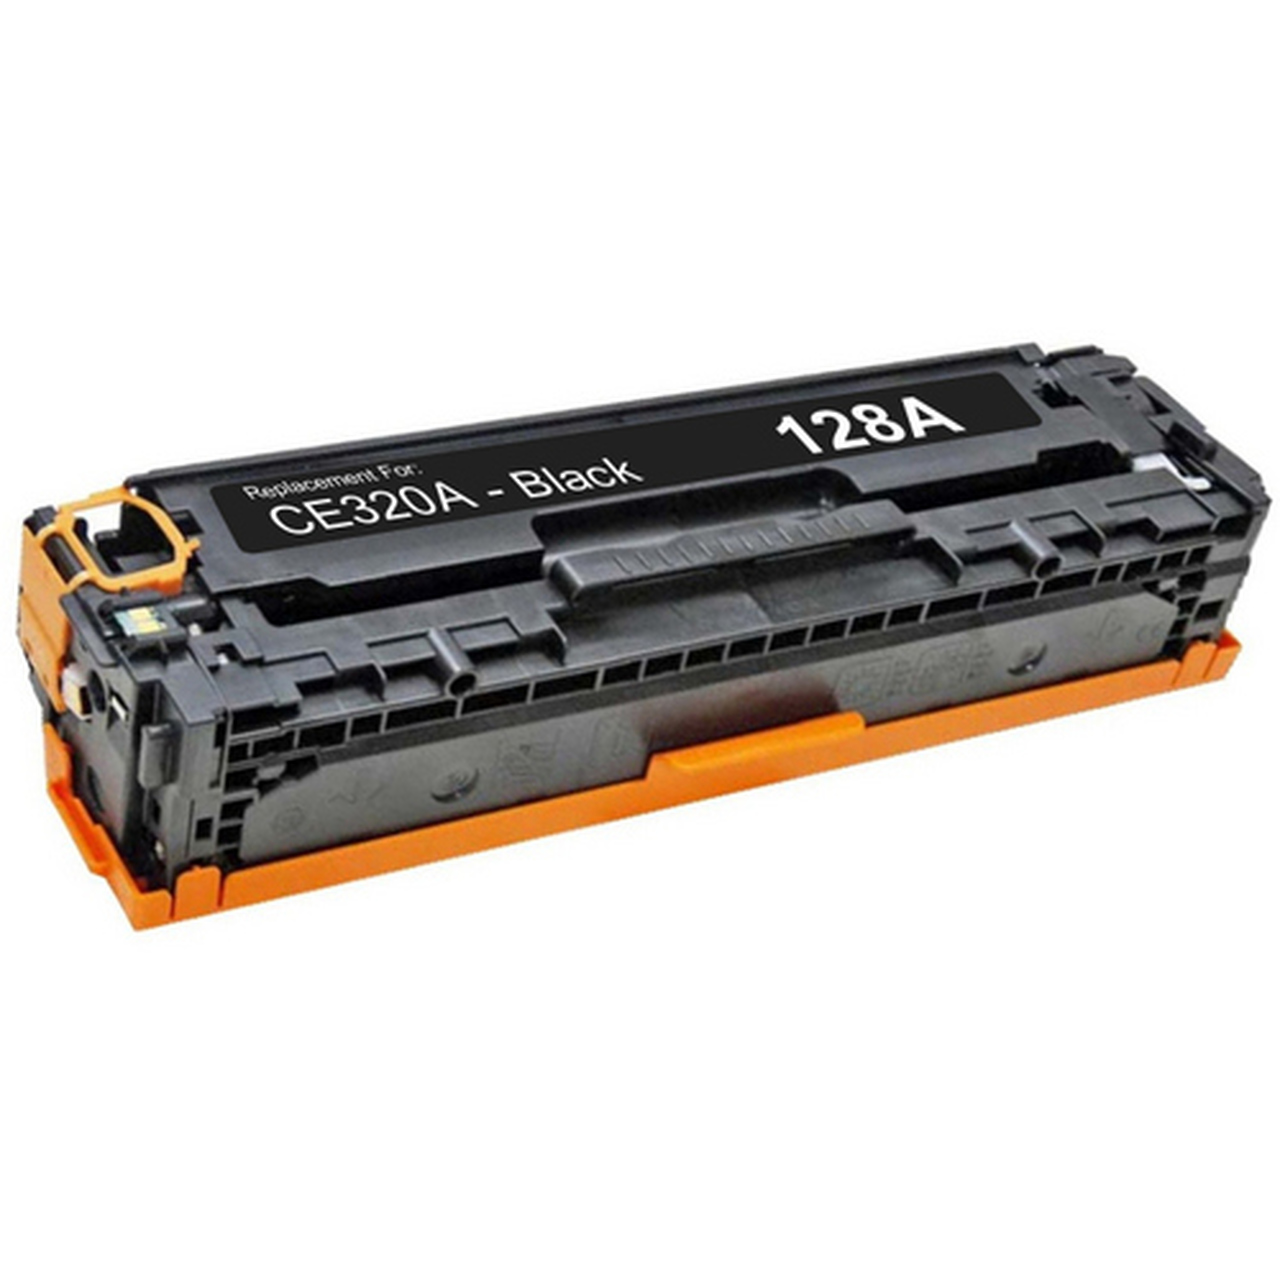 Toner Cartridge Compatible HP 128A (CE320A) Black